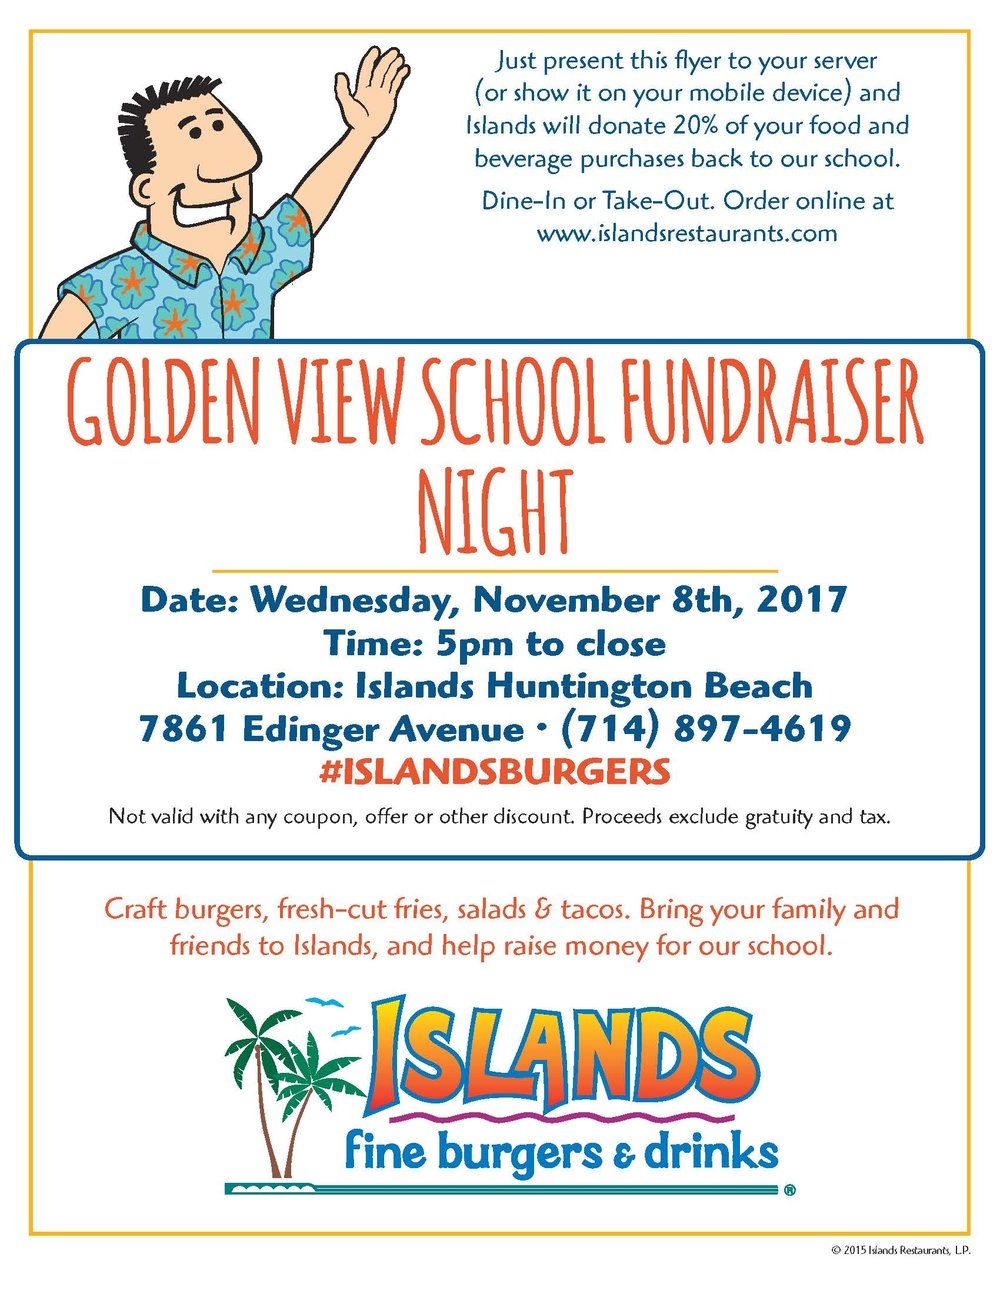 islands fundraiser nov 8.jpg